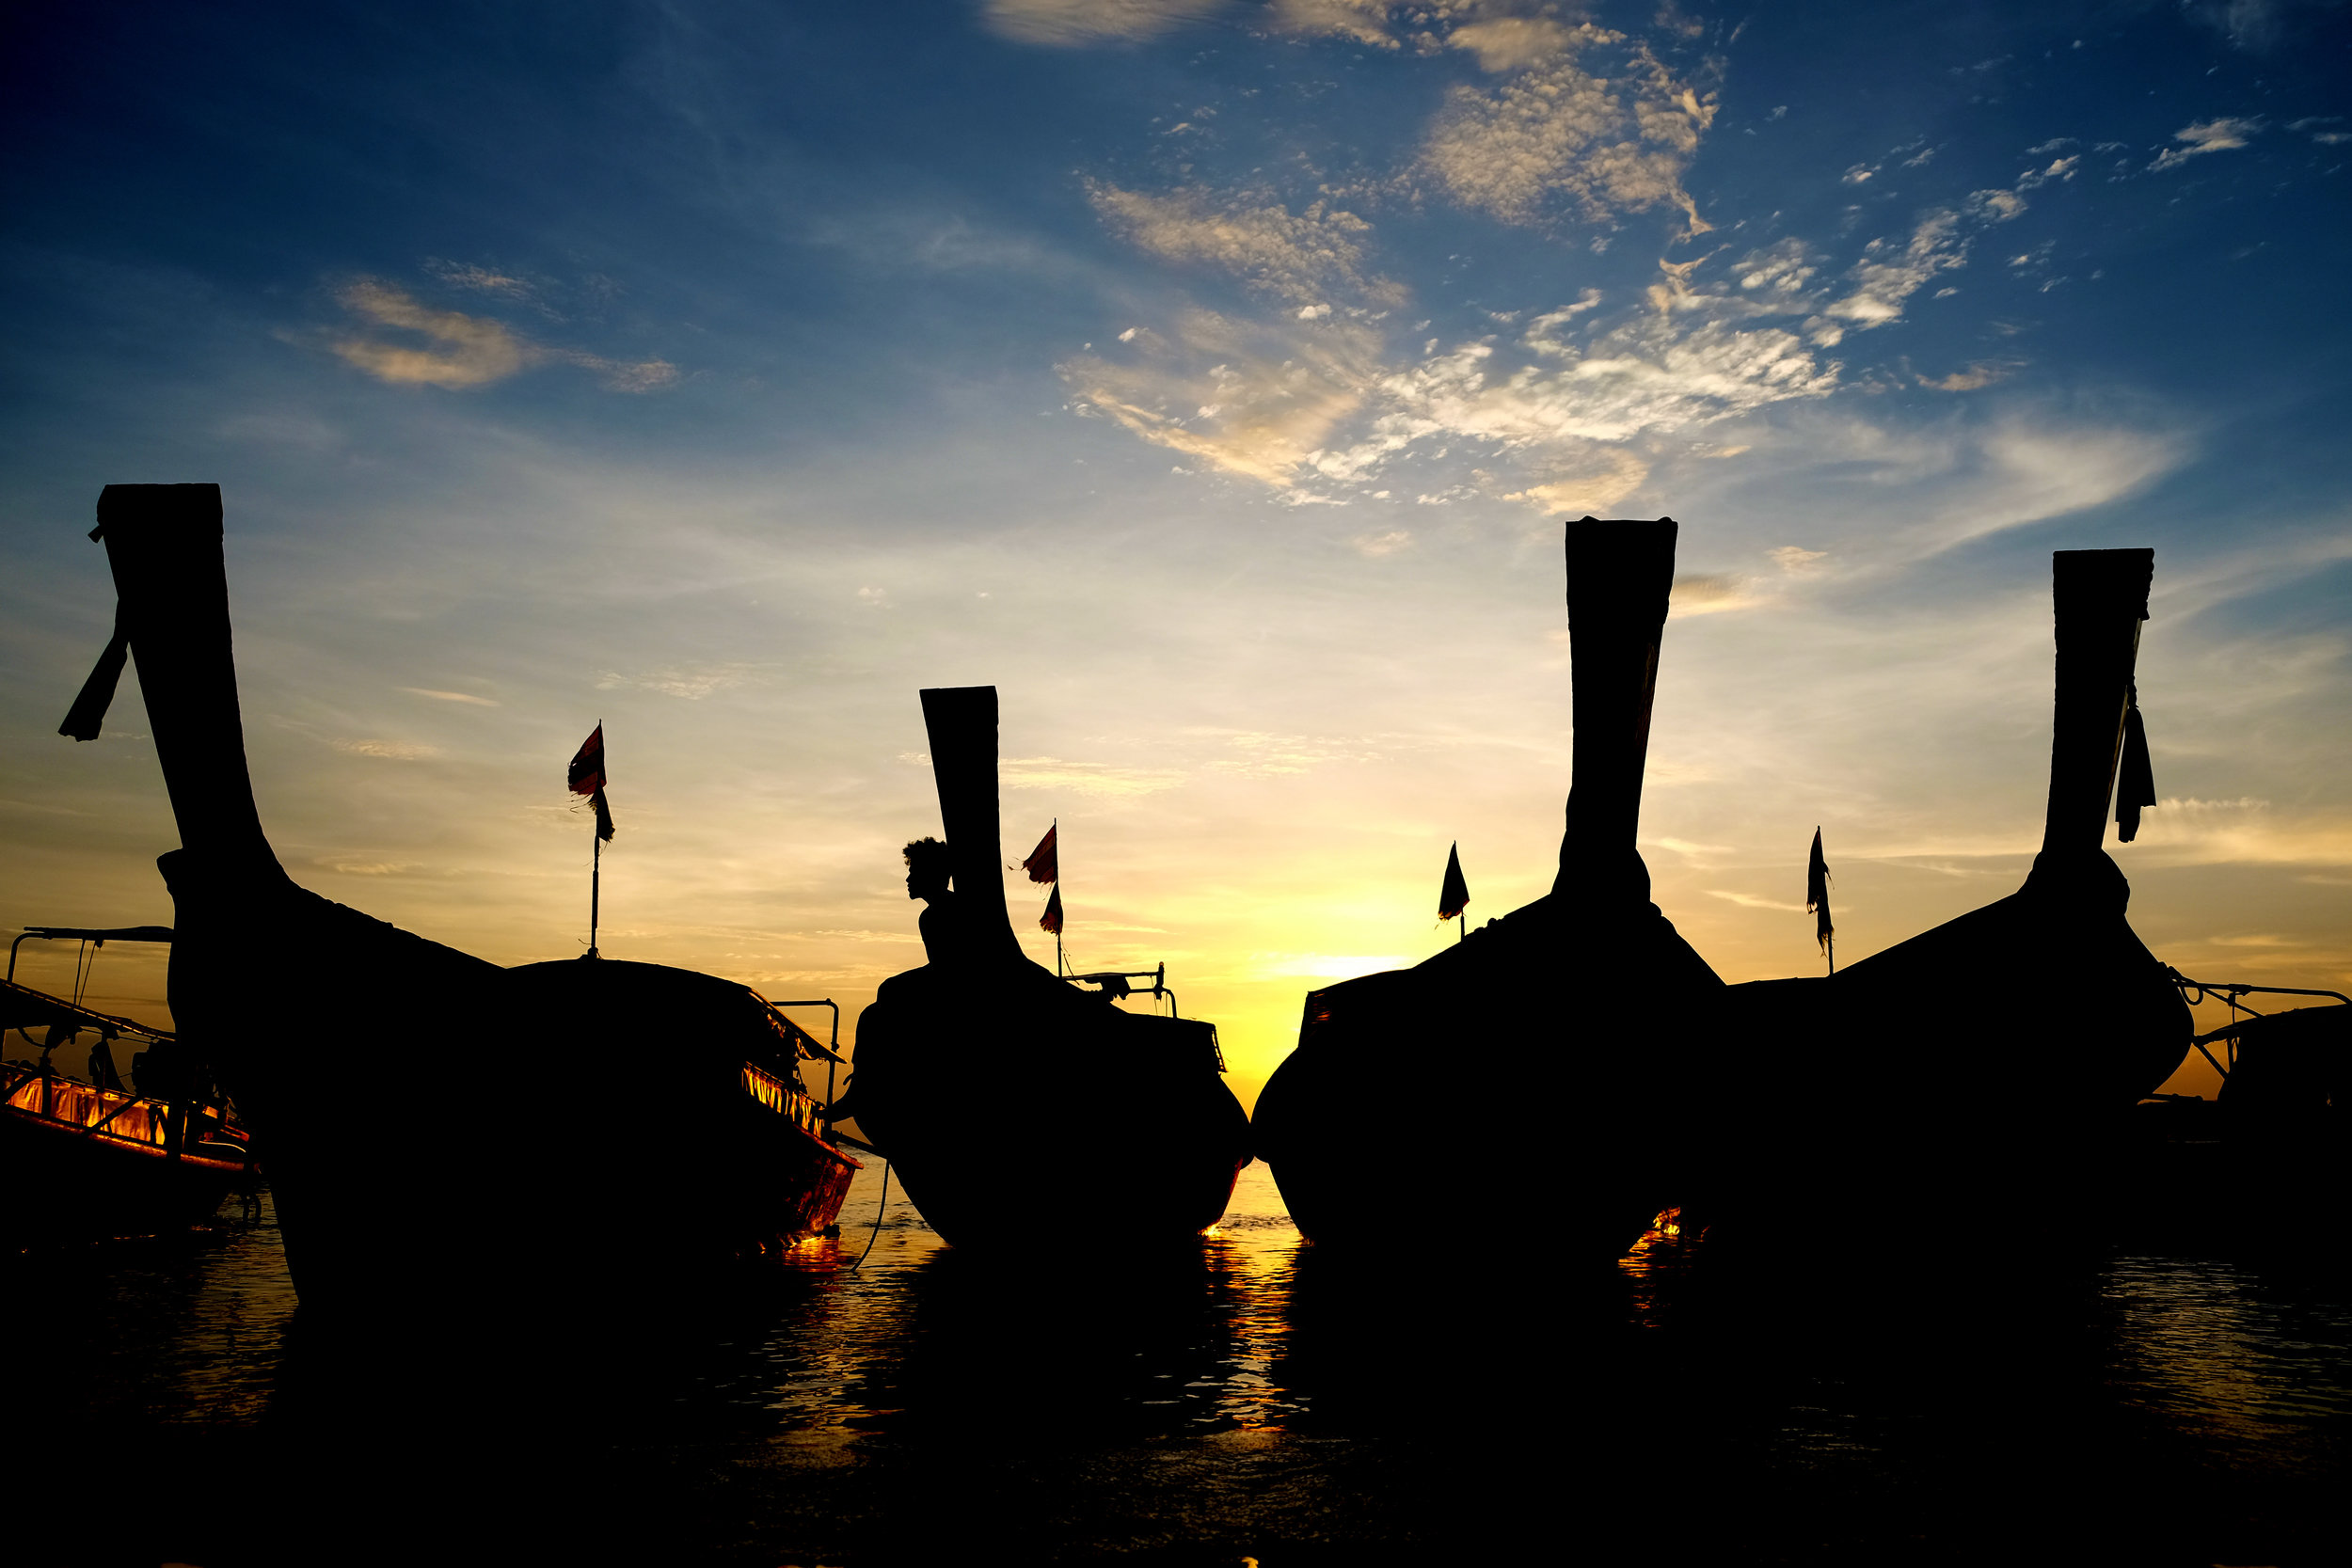 Long-tail boats at sunset